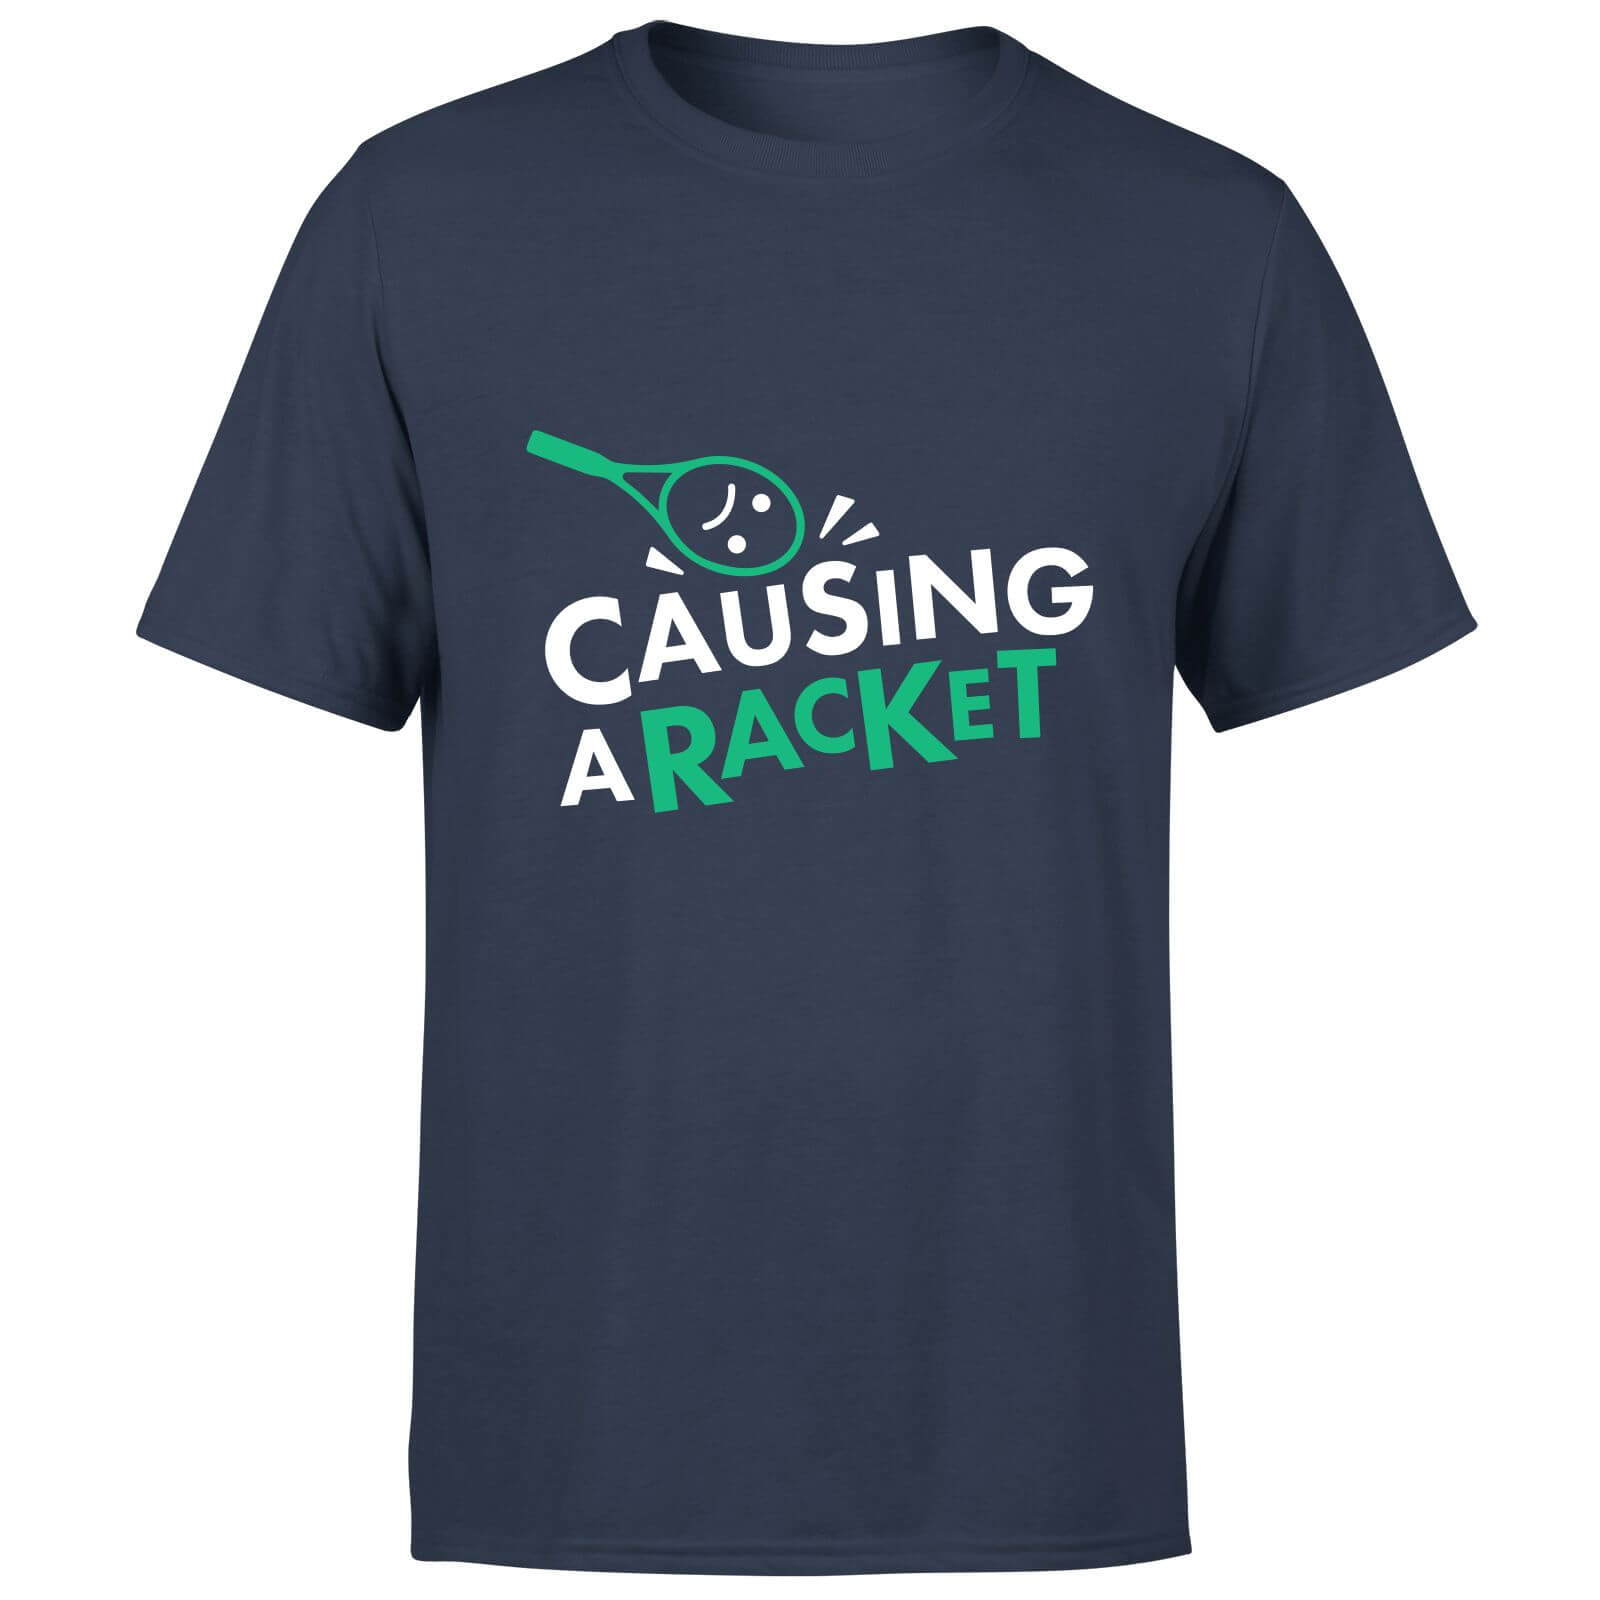 Causing a Racket T-Shirt - Navy